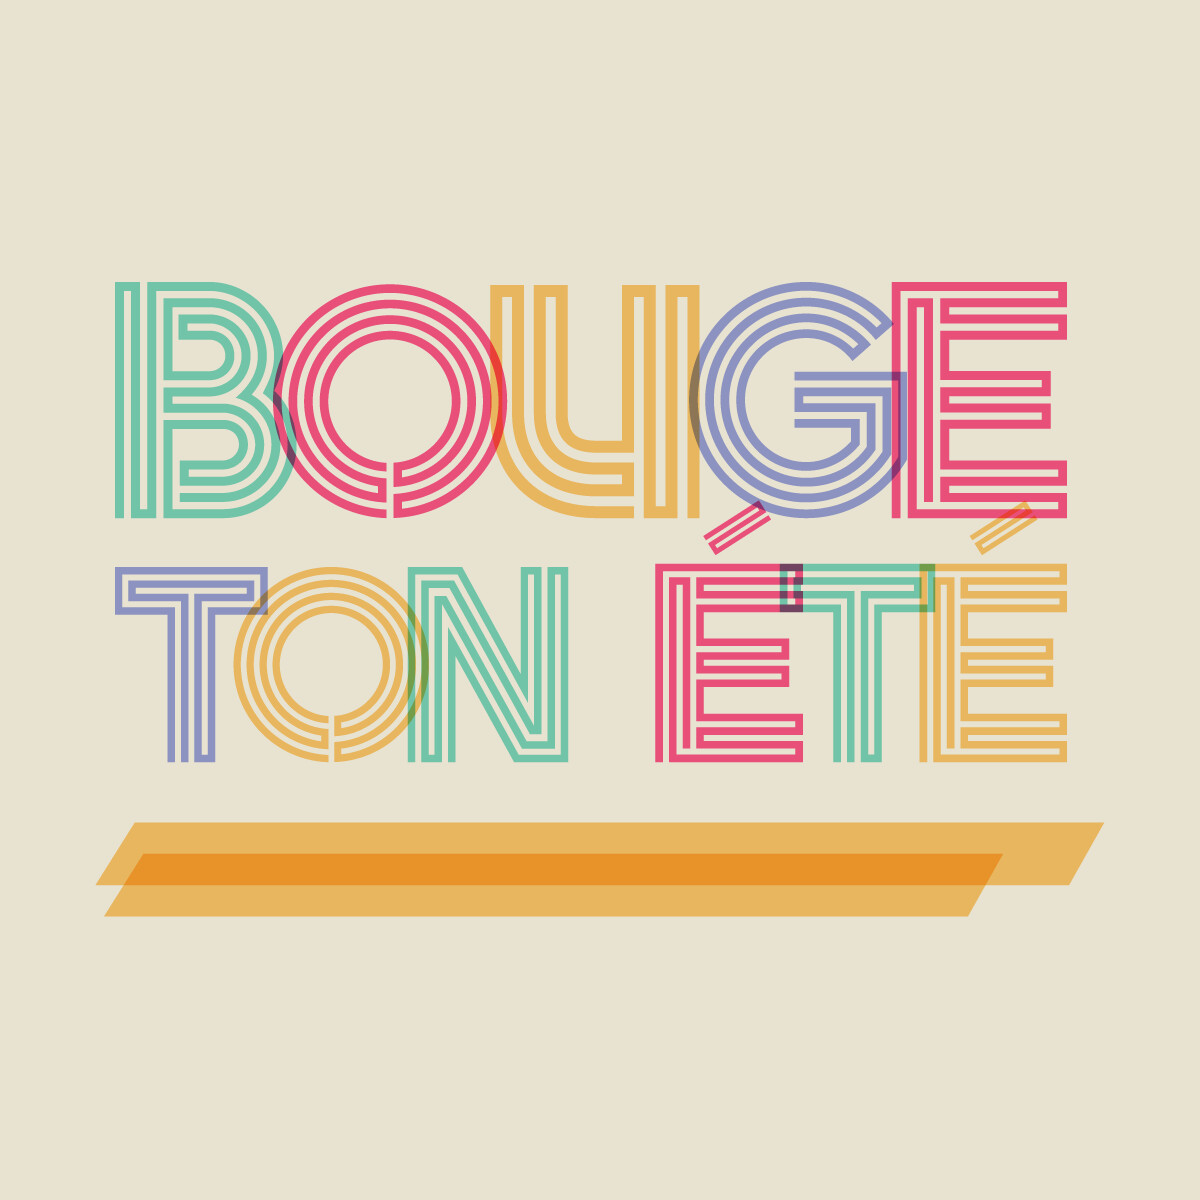 August 3- 6 août - Camp d'été - French Day Camp - For ages 6 to 12